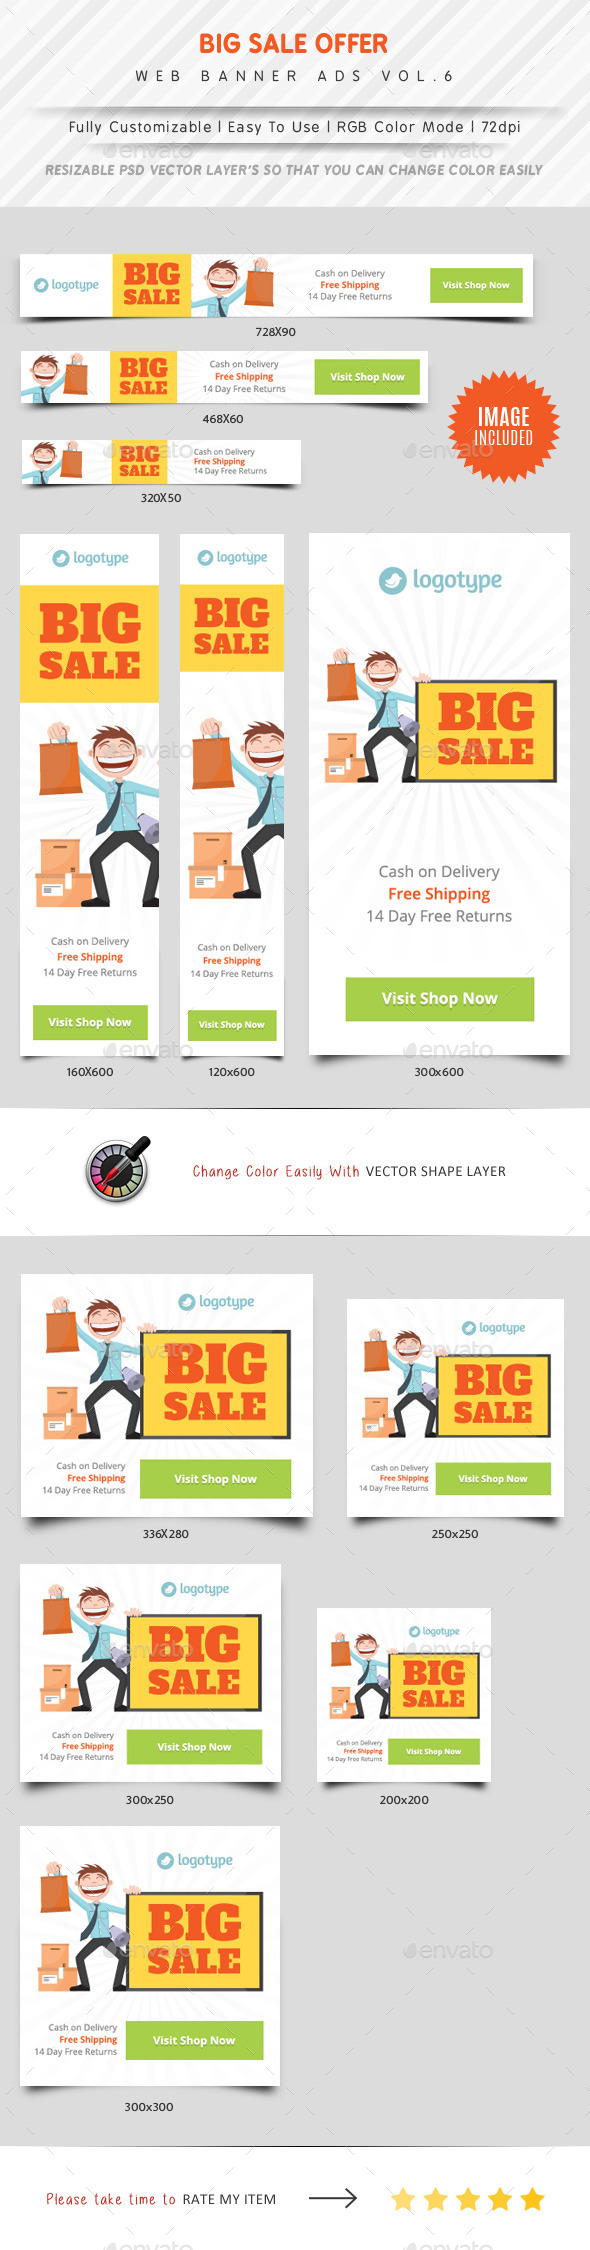 Big Sale Web Banner Ads Vol.6 - Banners & Ads Web Elements